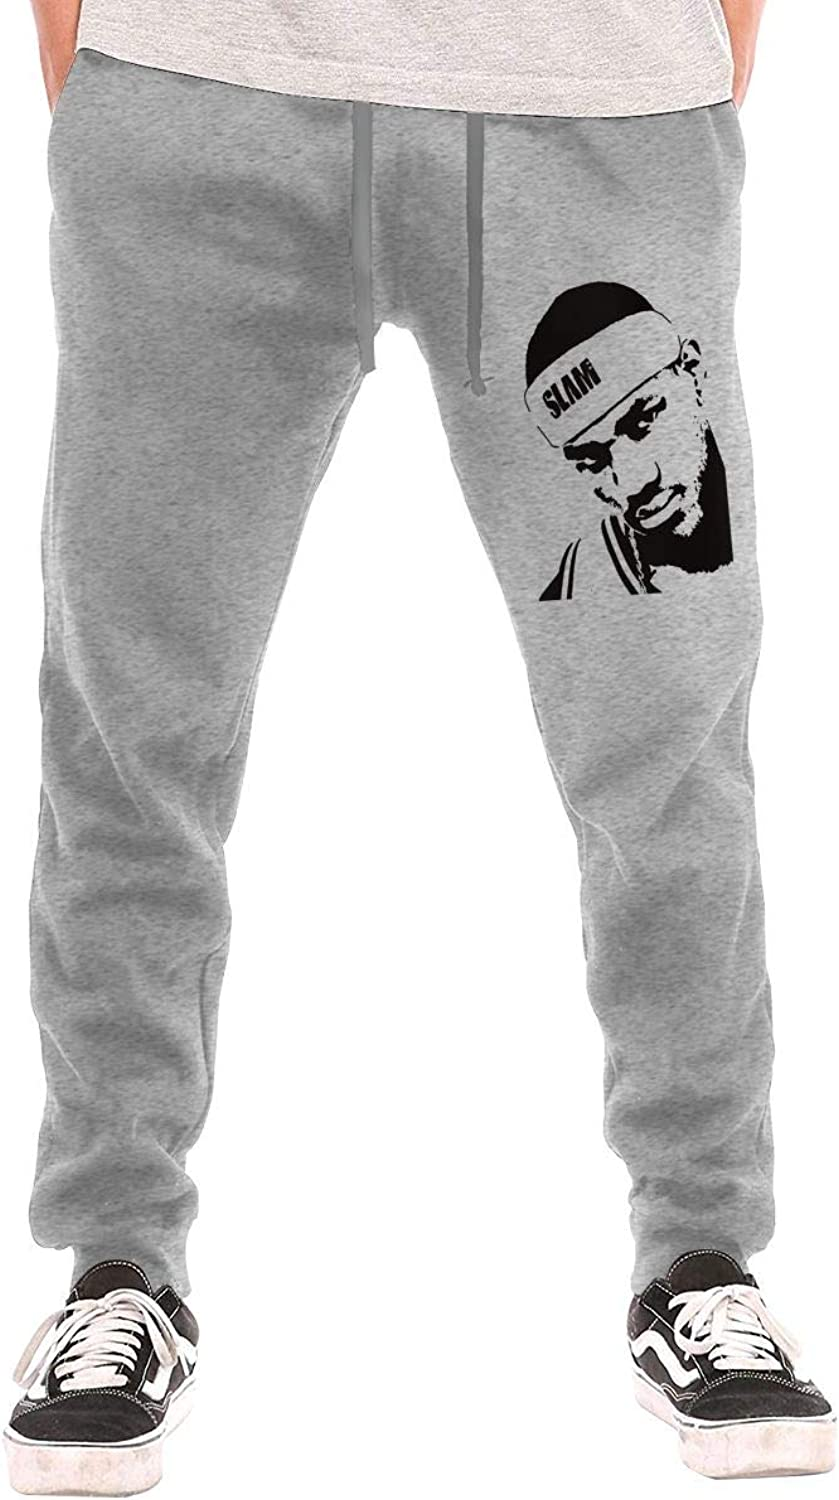 BarWords Men's Casual Sweatpants 23ClevelandCavaliersLebron James Jogger Pants Gym Workout Running Sportswear Trousers